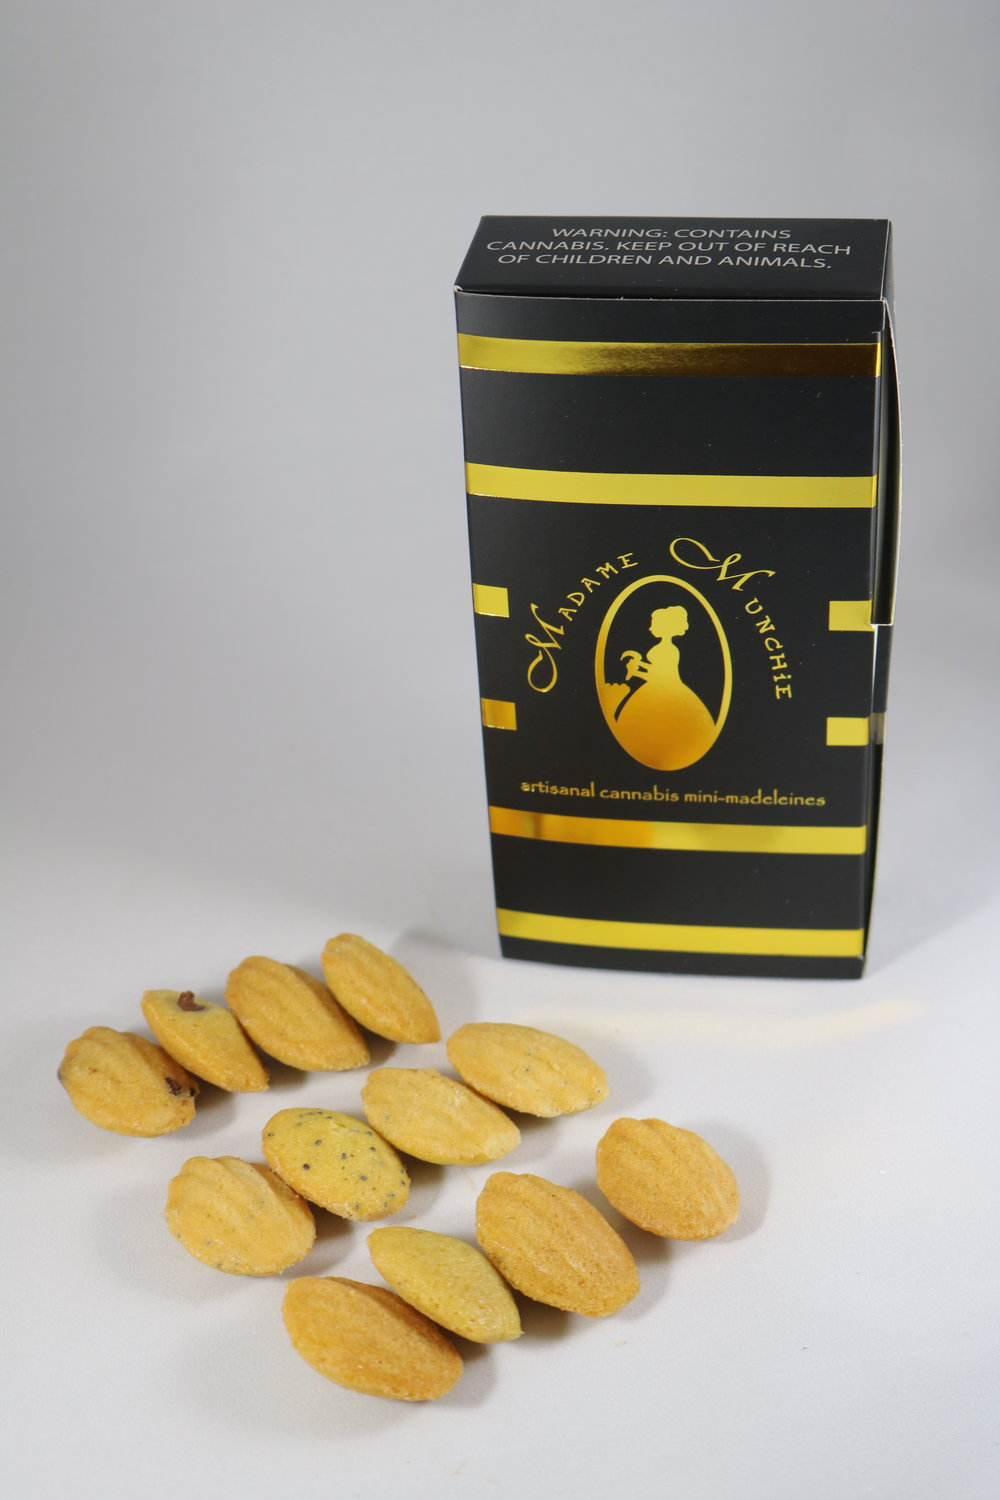 12 madeleines per box - 3 different flavors - 120mg THC all together